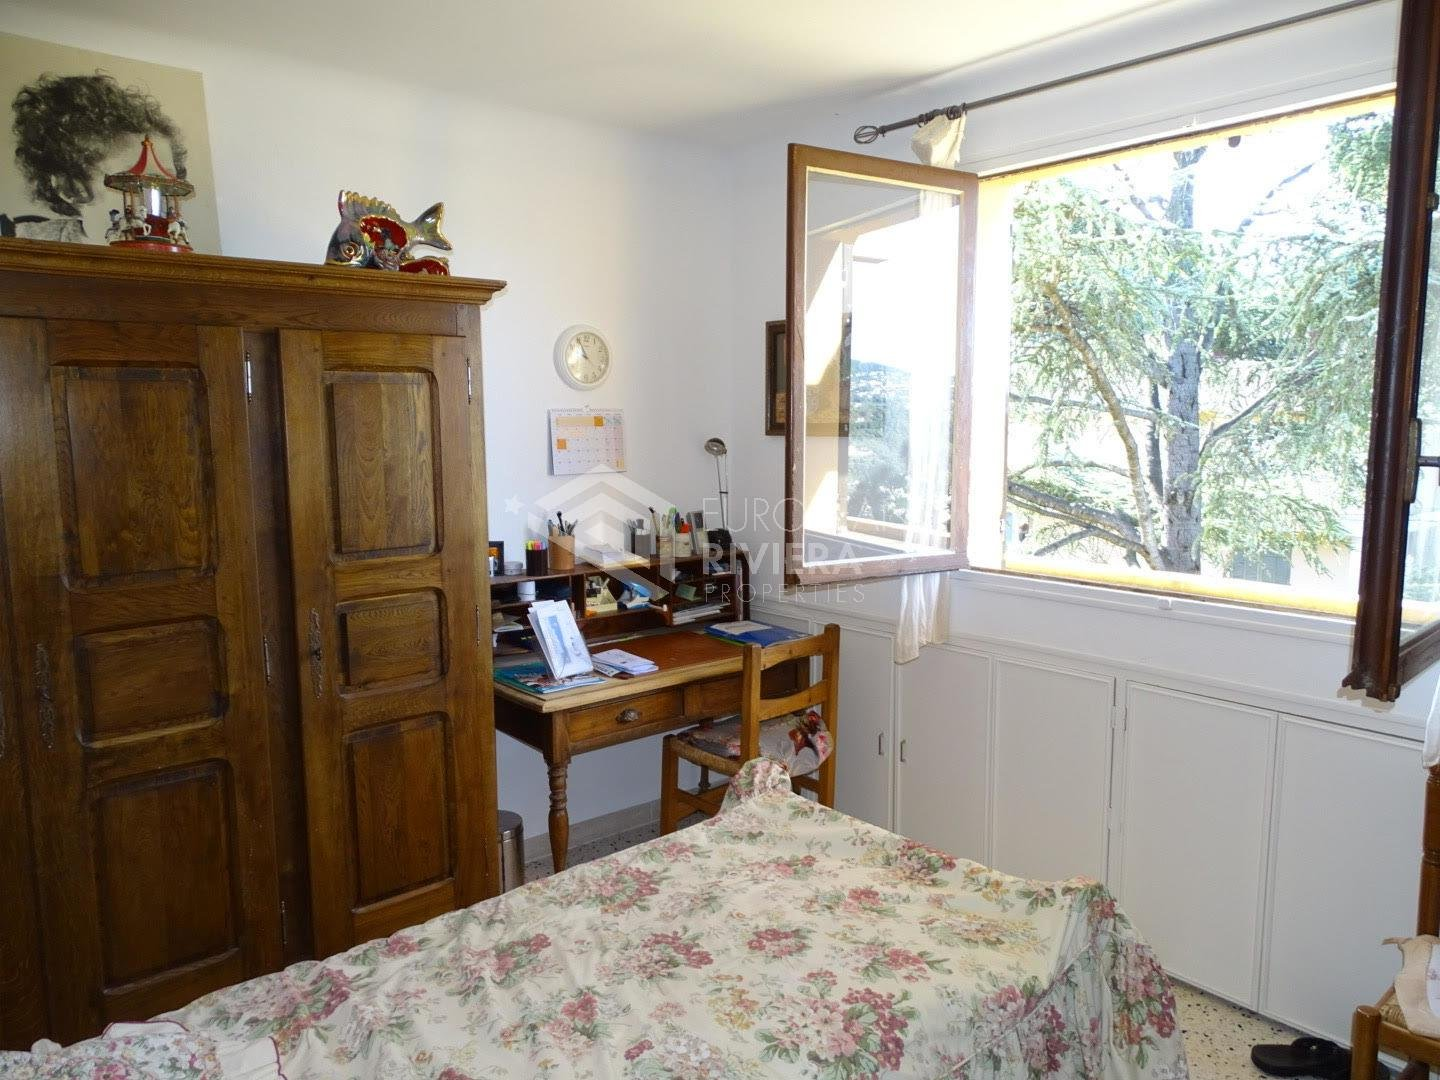 NICE LA TRINITE/CITE DU SOLEIL - F4 - 75M² - TERRASSE 28M² - PARKING